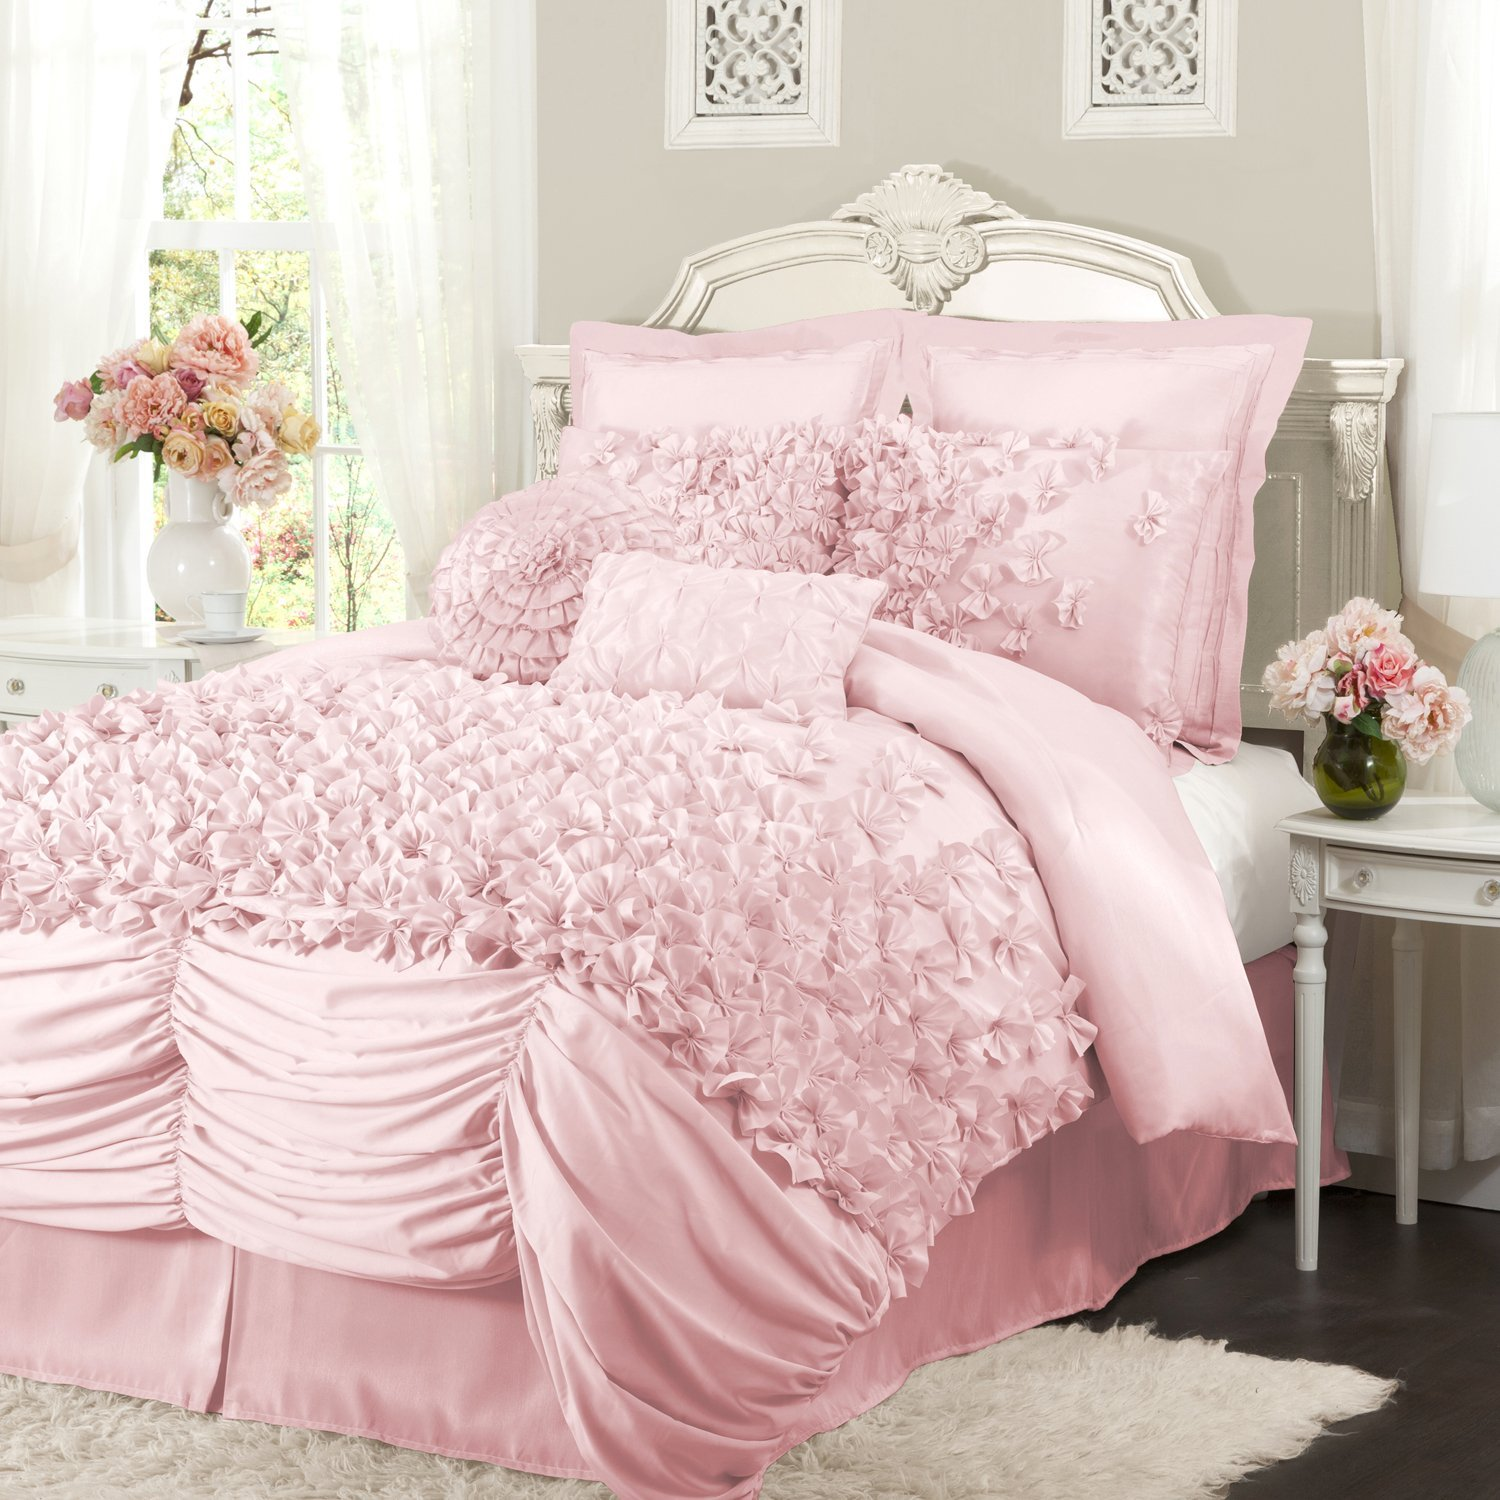 full photo victoria grey large comforter sets size secrets gardena design fall for baby of greypinkdark blush place bedding soft pale set in luxury to pink bag staggering